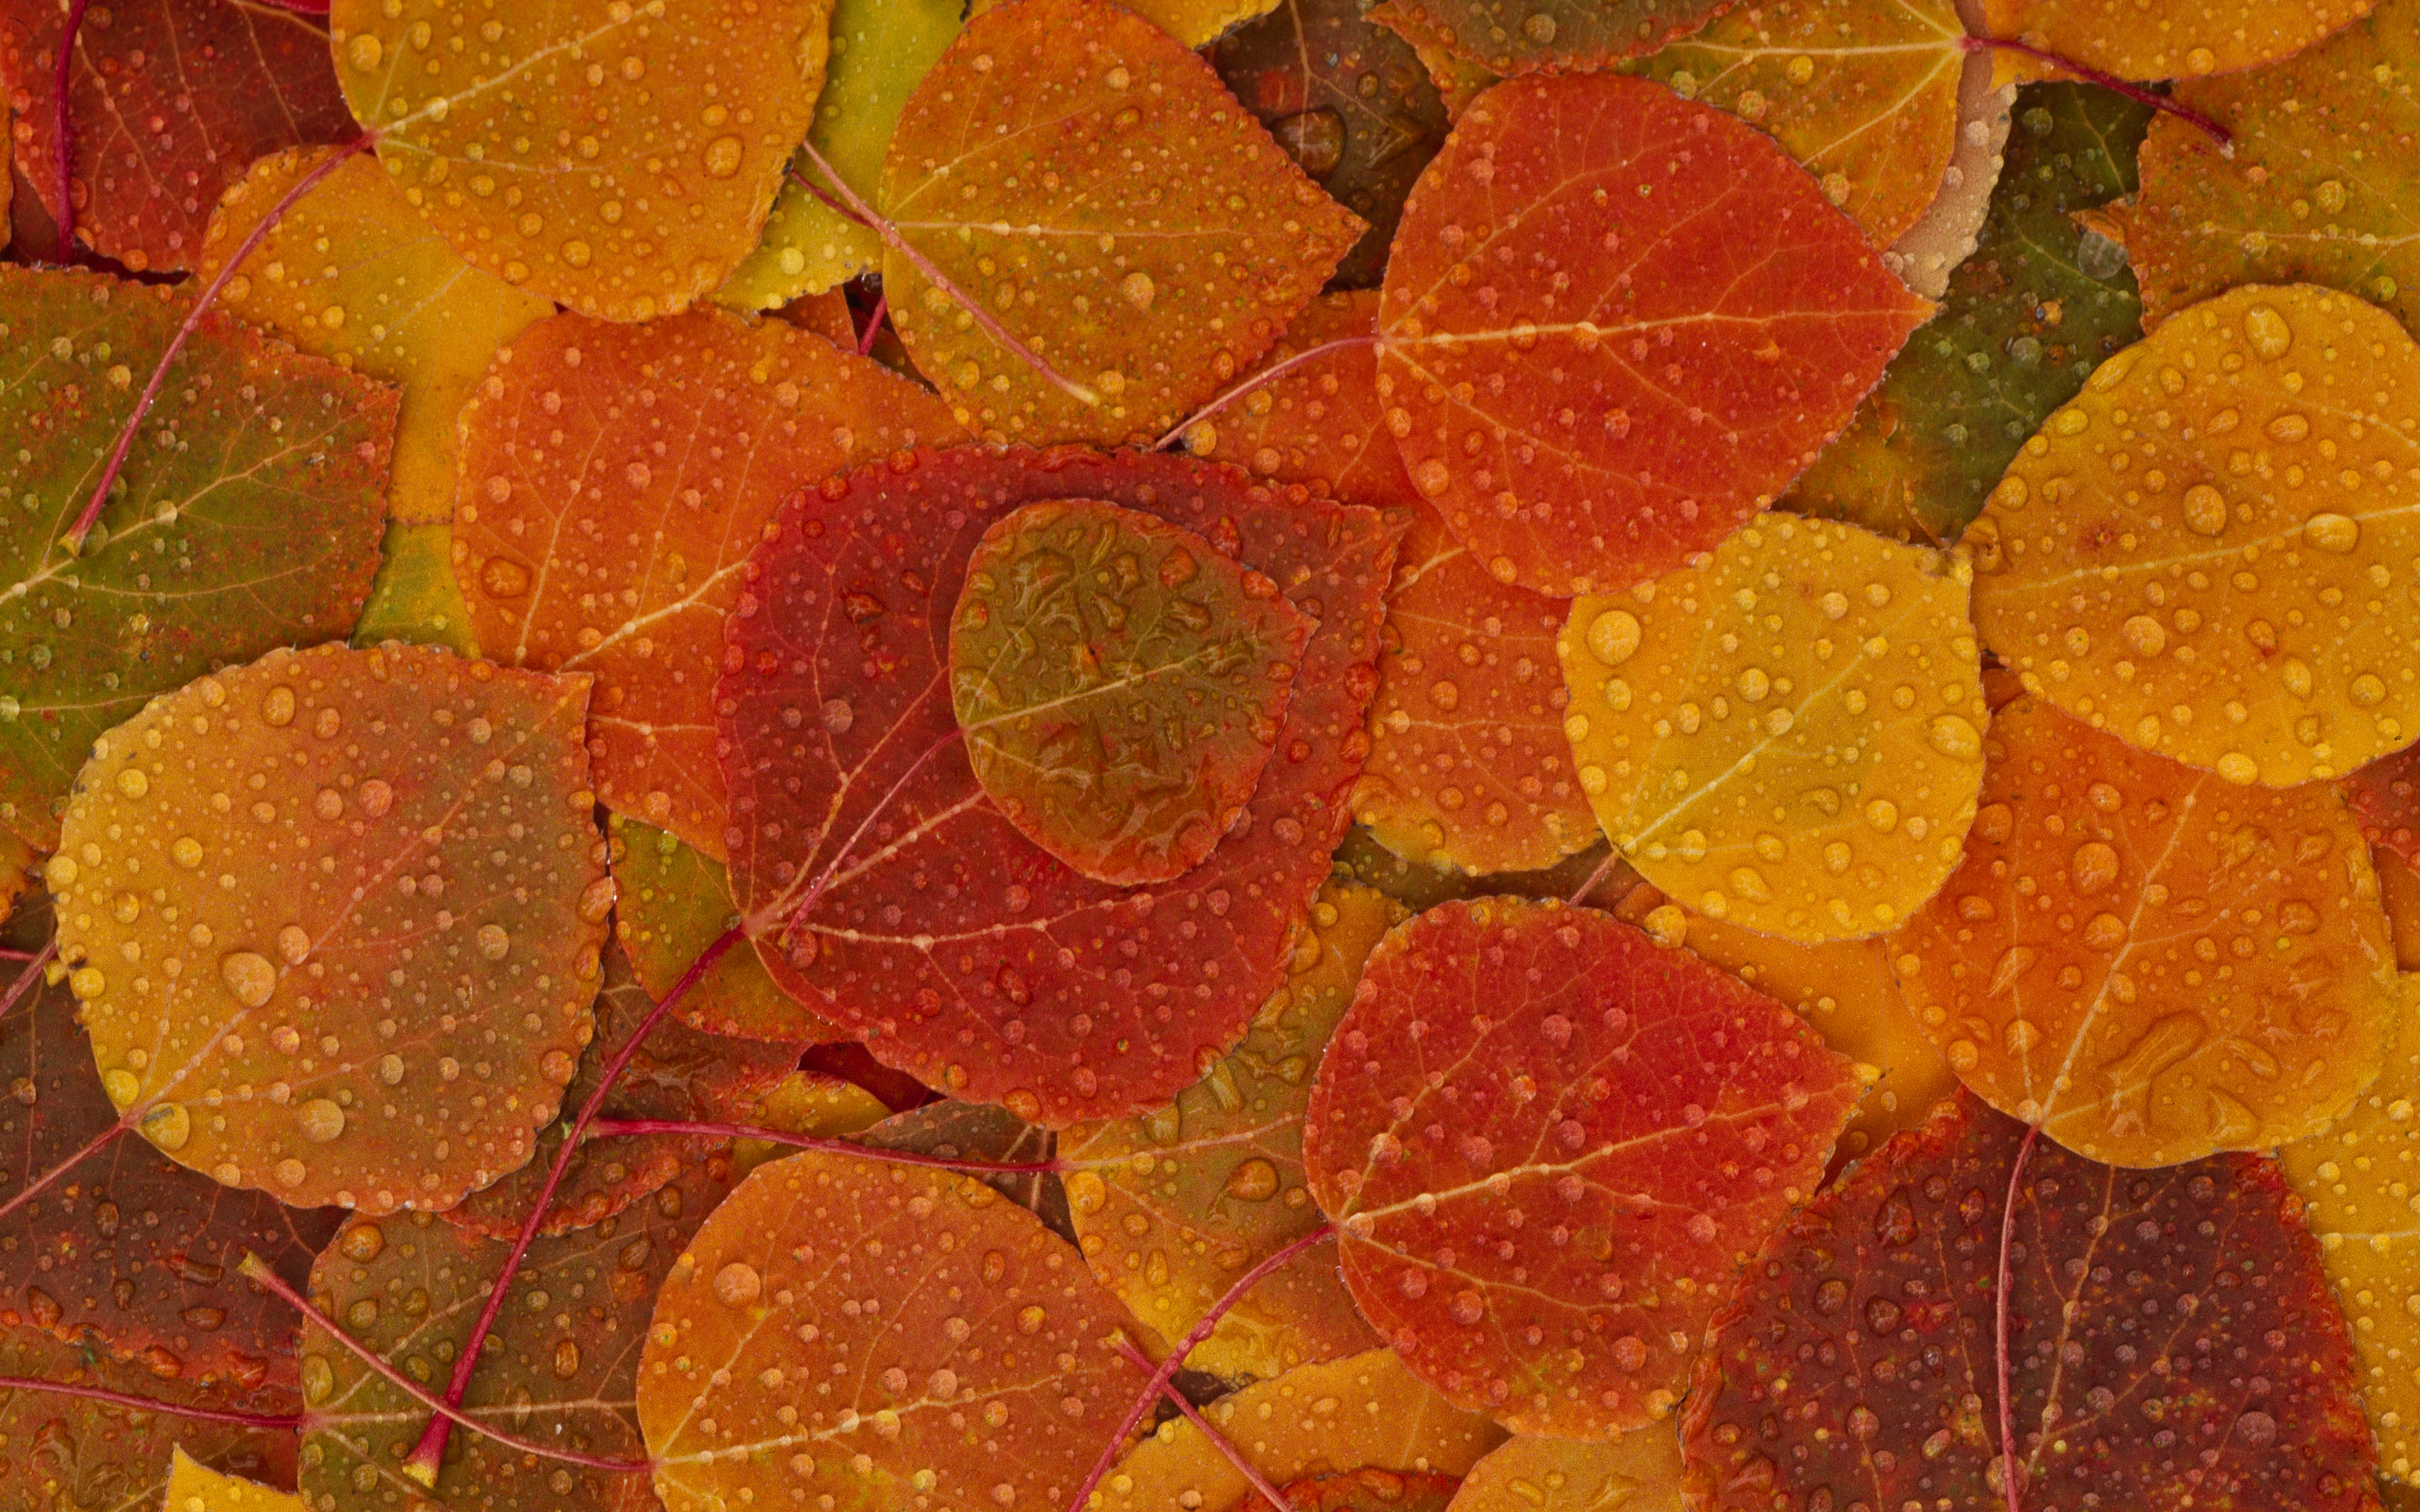 desktop wallpaper fall foliage   wwwwallpapers in hdcom 2560x1600